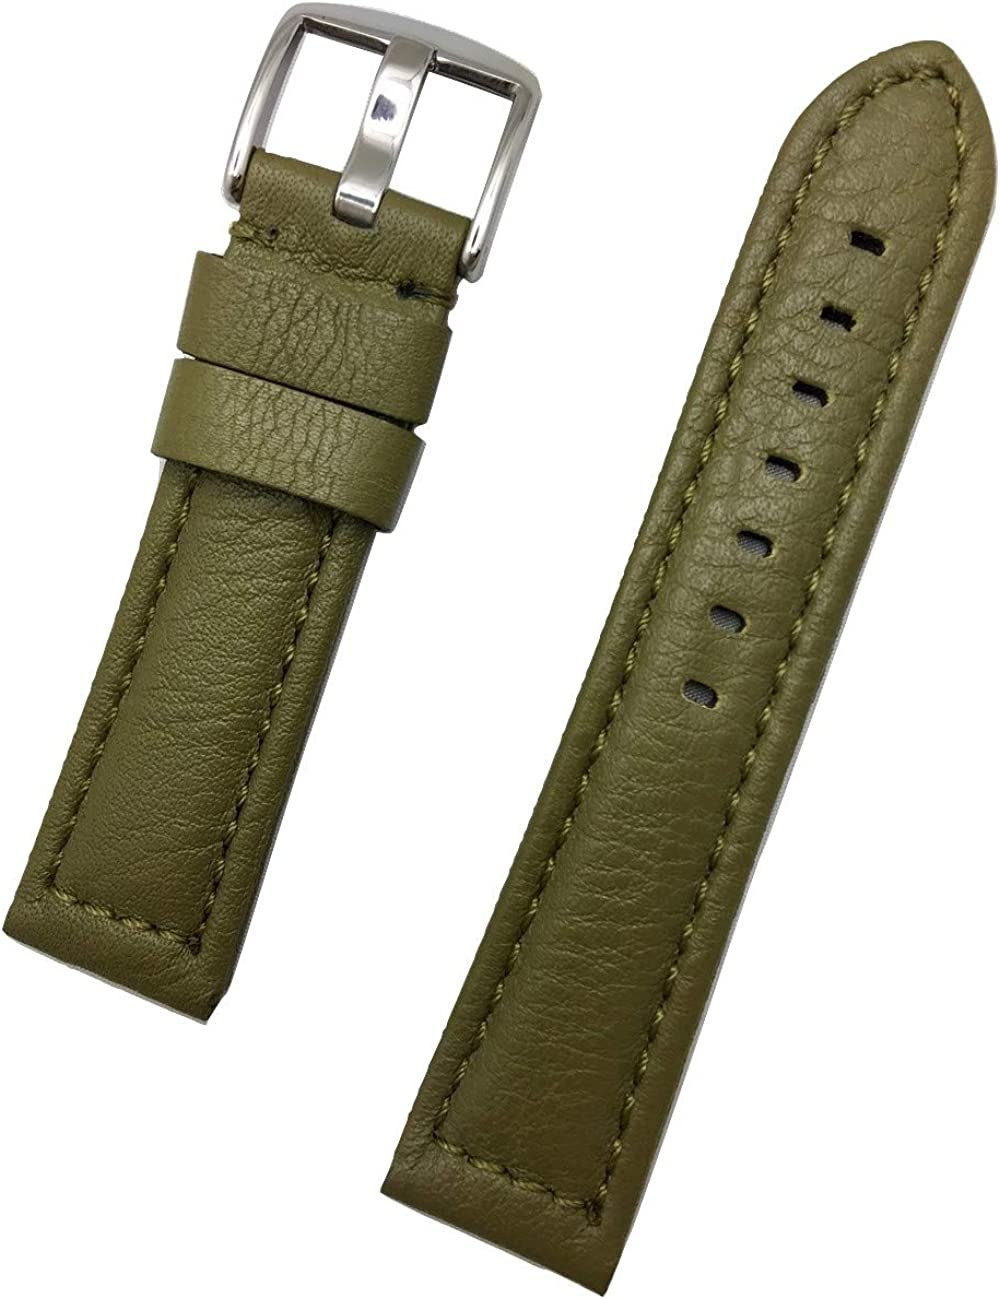 22mm Green Leather Watch Band Compatible with Panerai Watch | Soft, Smooth, Medium Padded Replacement Wrist Strap Bracelet that brings New Life to Any Watch (Mens Standard Length)